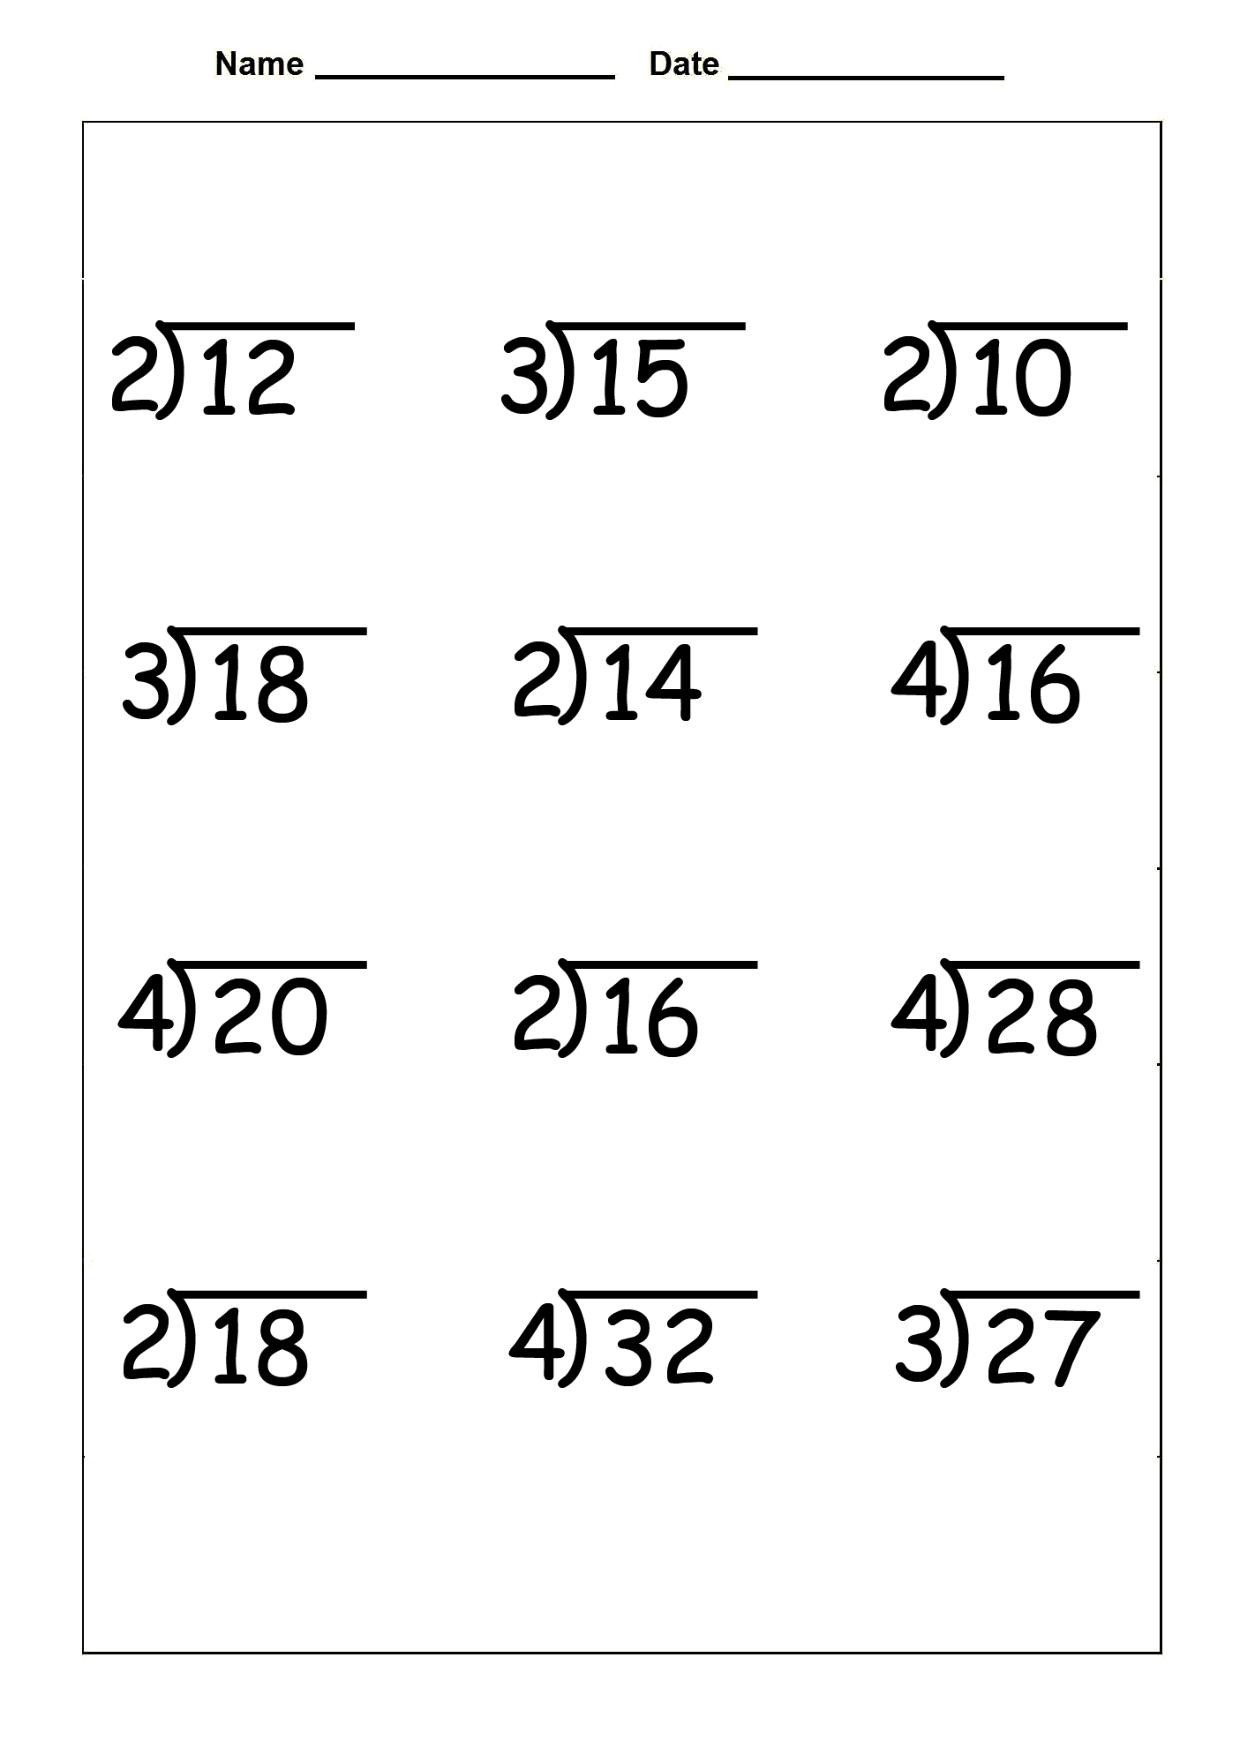 division12questions worksheet 1 page 001